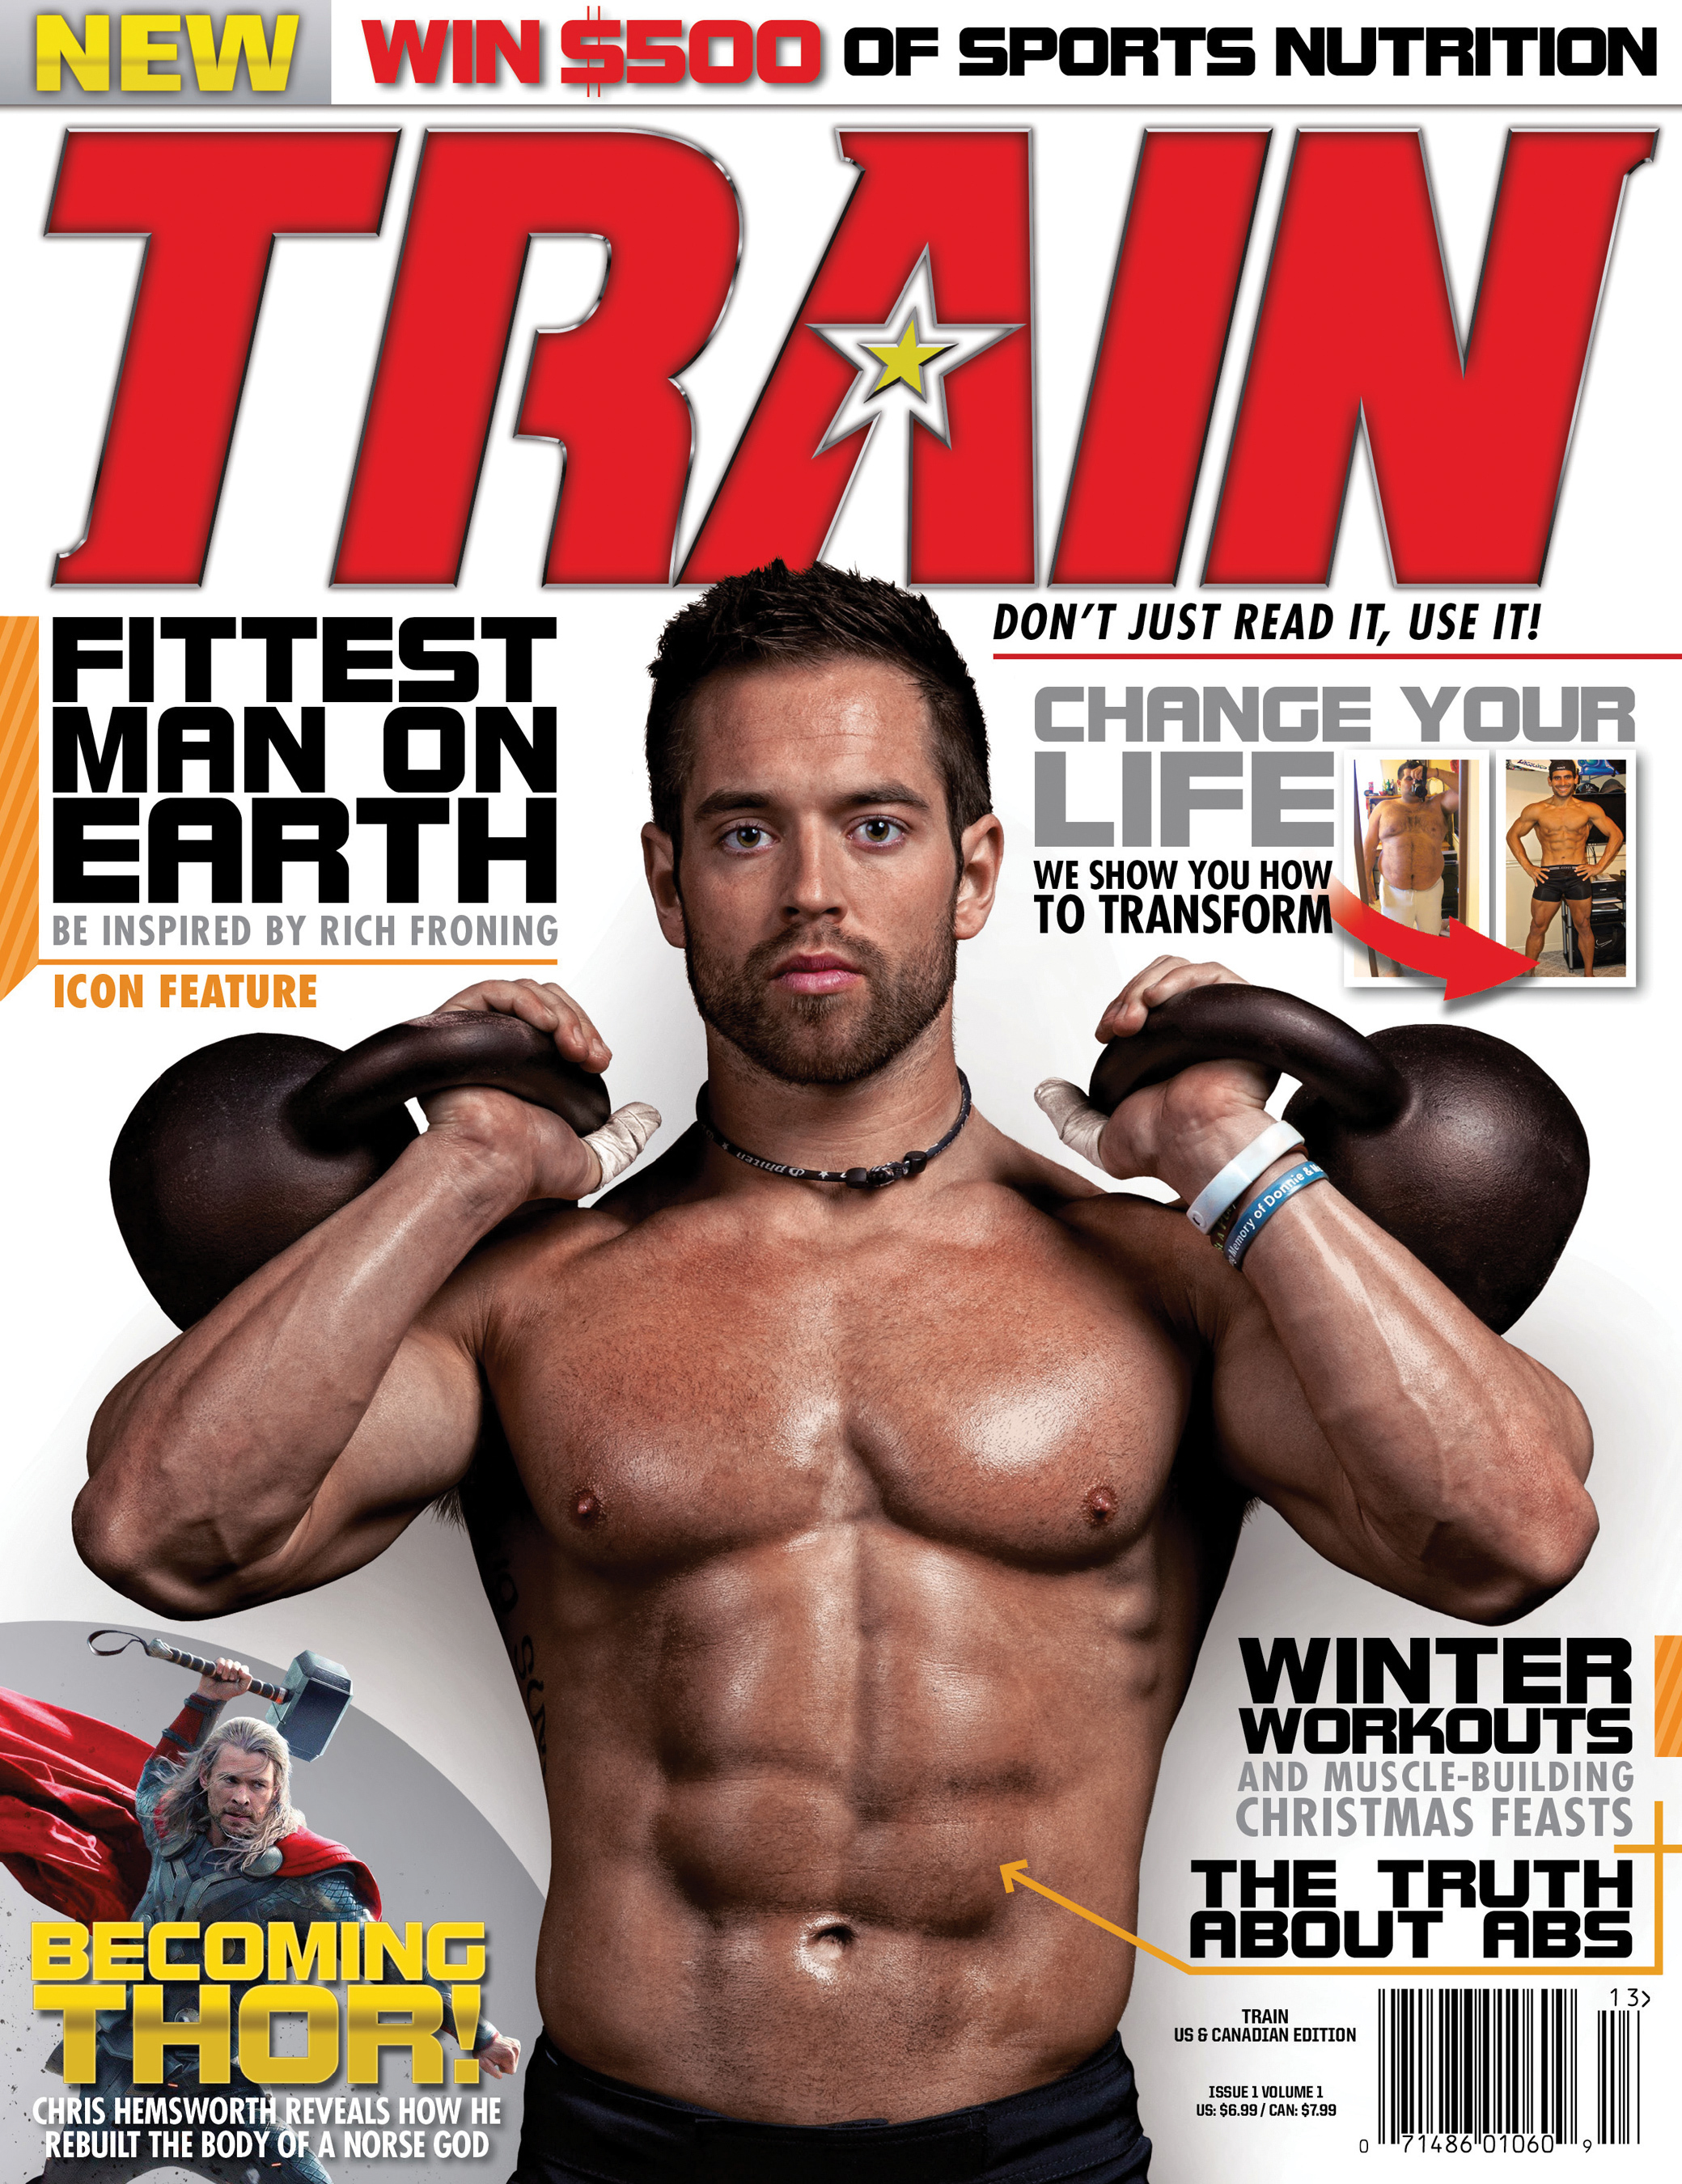 Fighters Only And Bodybuilding Com Announce Exclusive Print Partnership With The Launch Of Train Magazine Business Wire